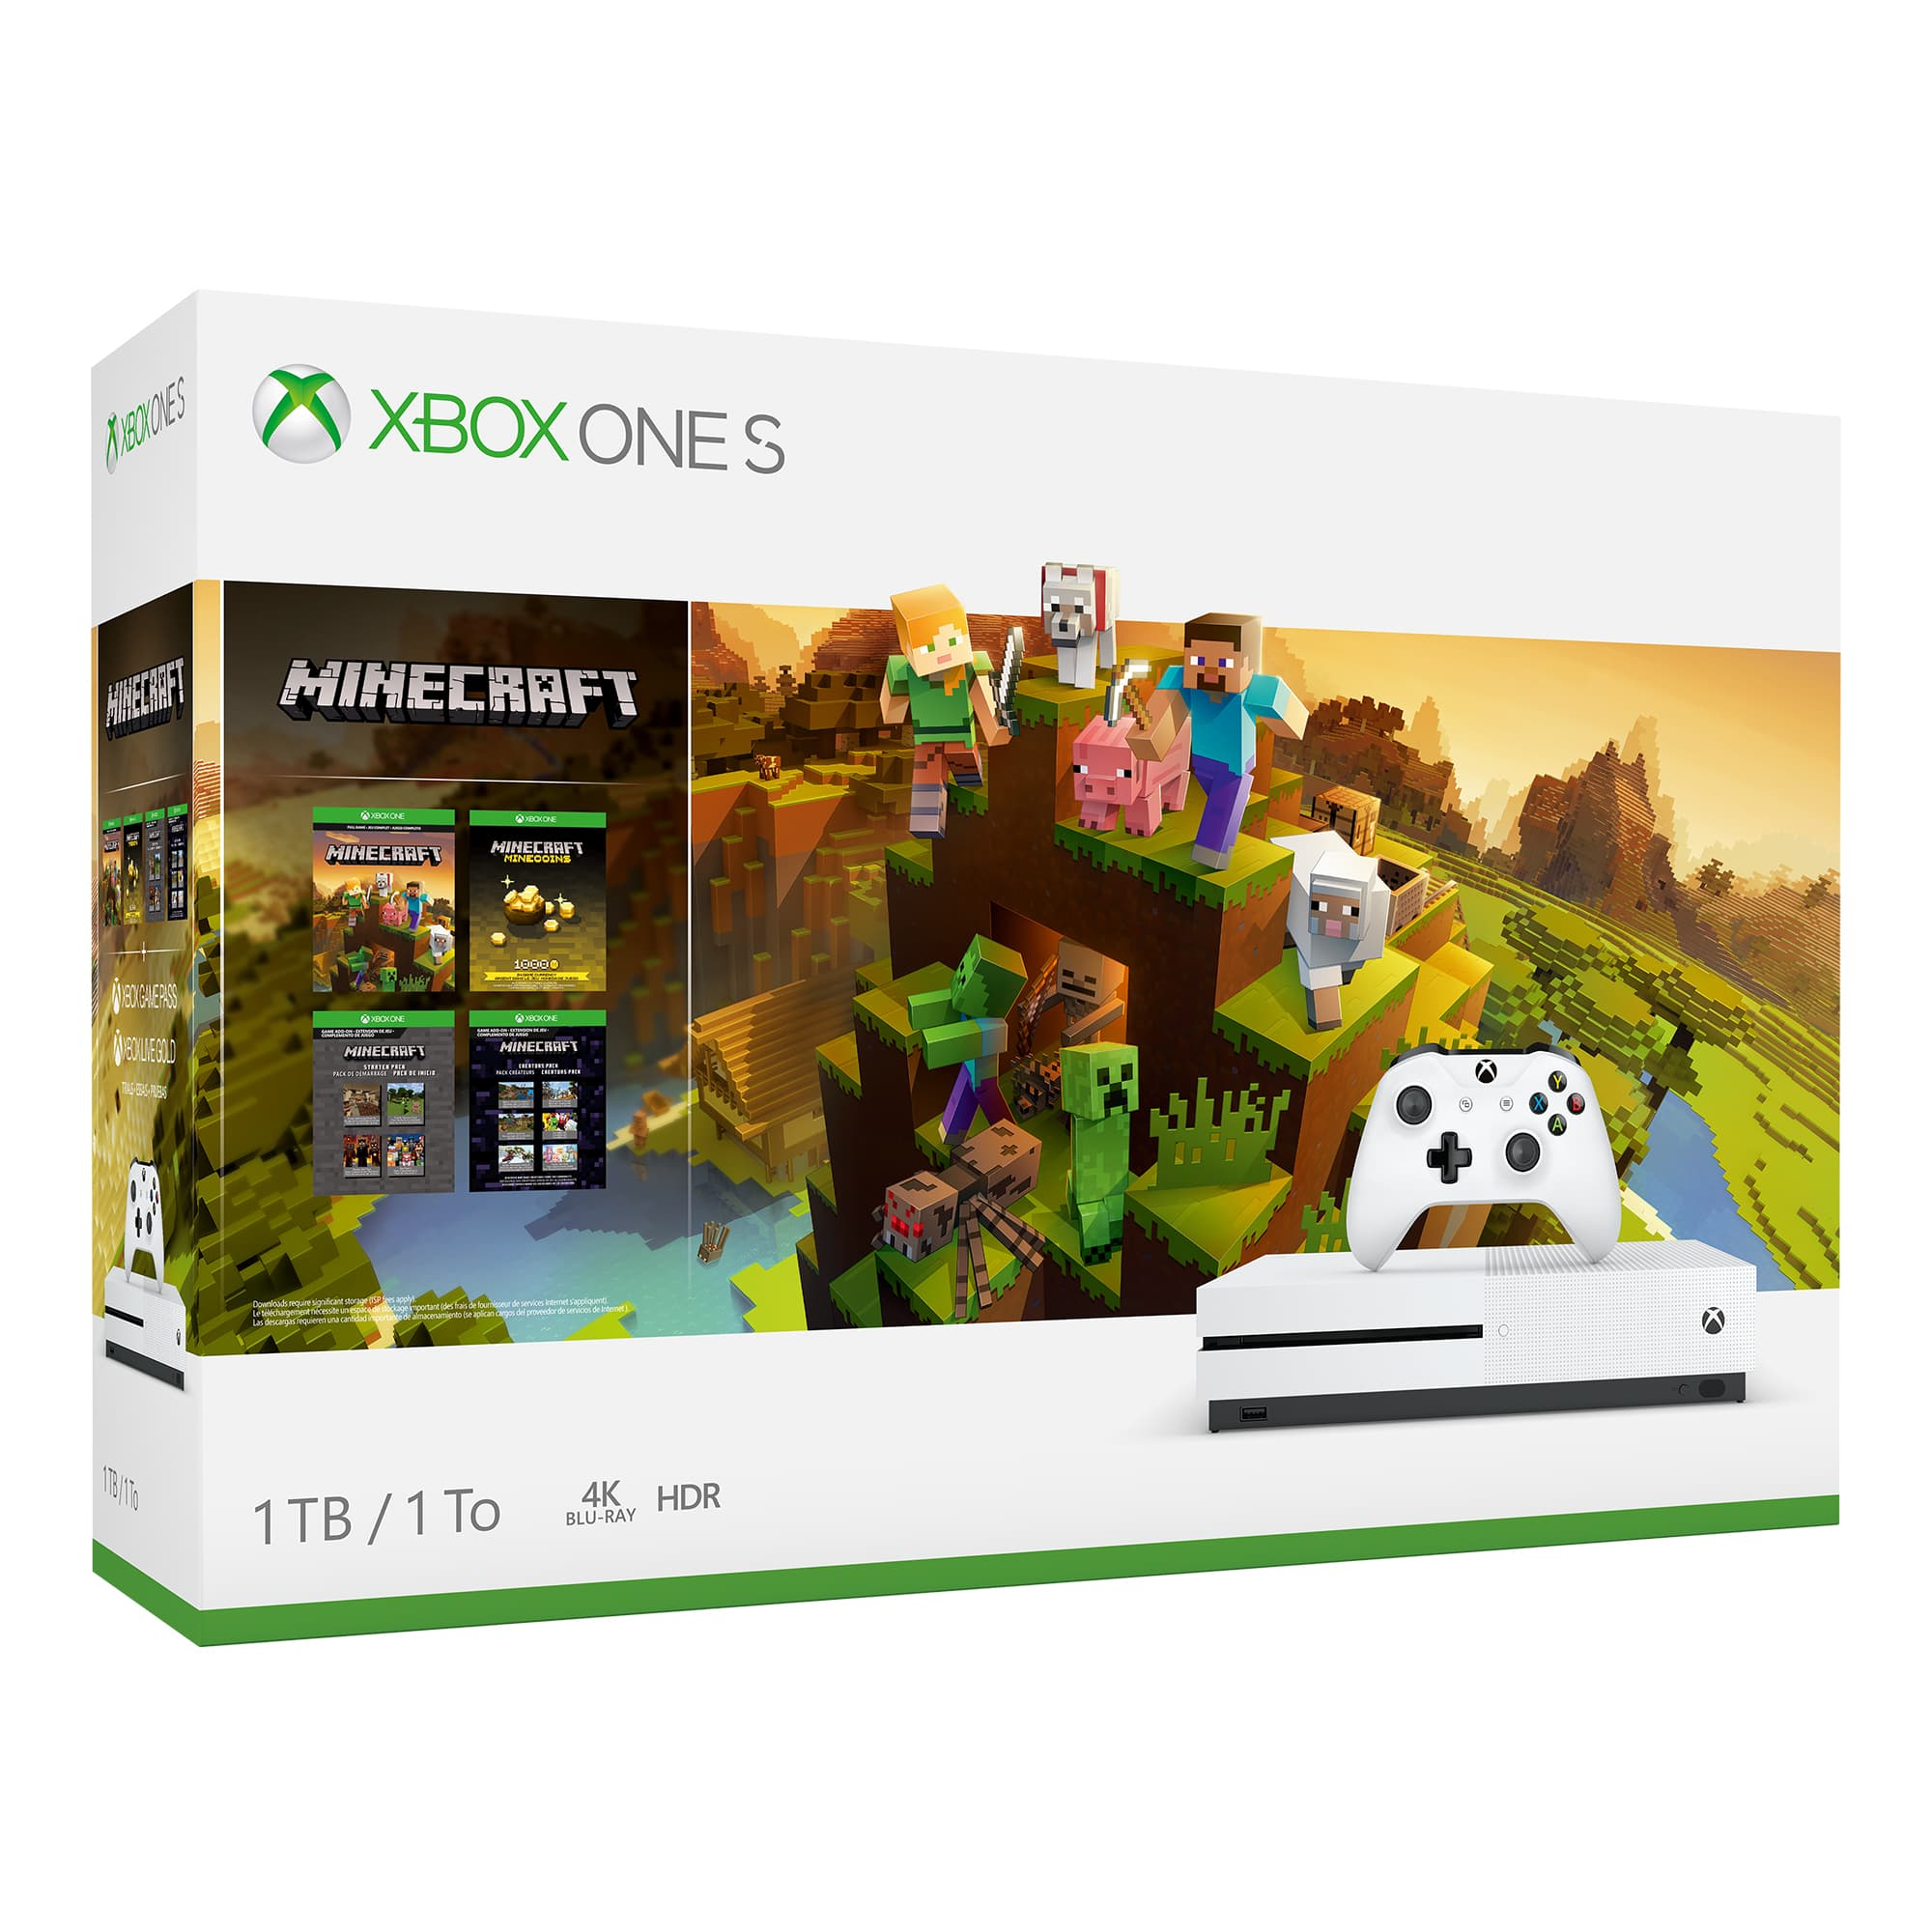 Xbox One S Minecraft Creators Bundle - in store YMMV $120